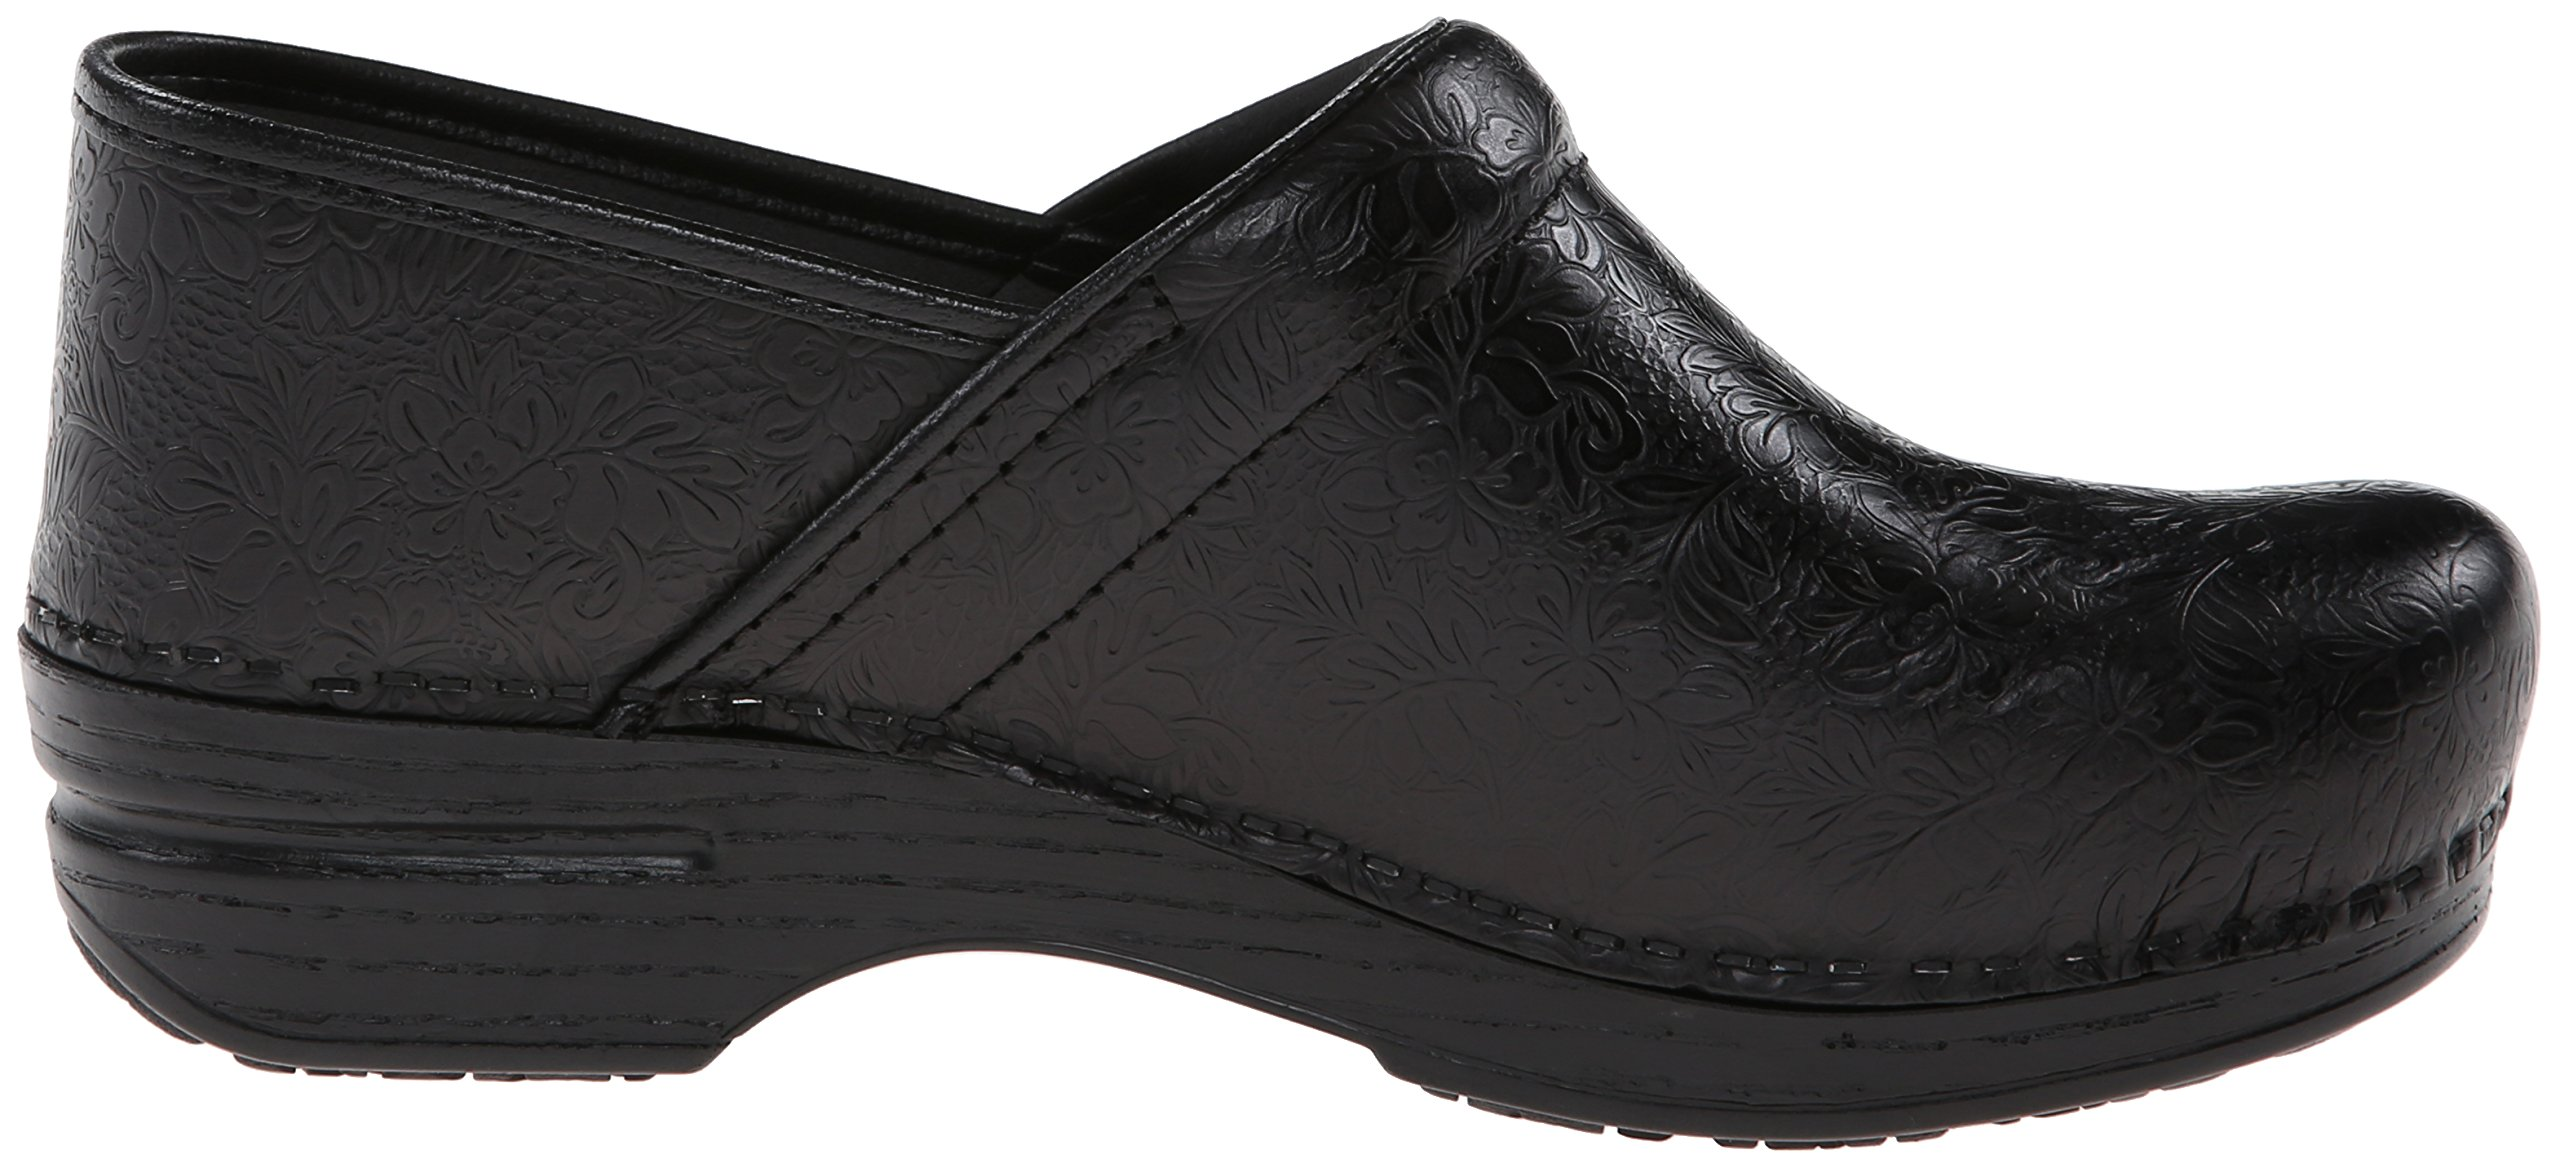 Dansko Women's Pro XP Mule,Black Floral Tooled,39 EU/8.5-9 M US by Dansko (Image #8)